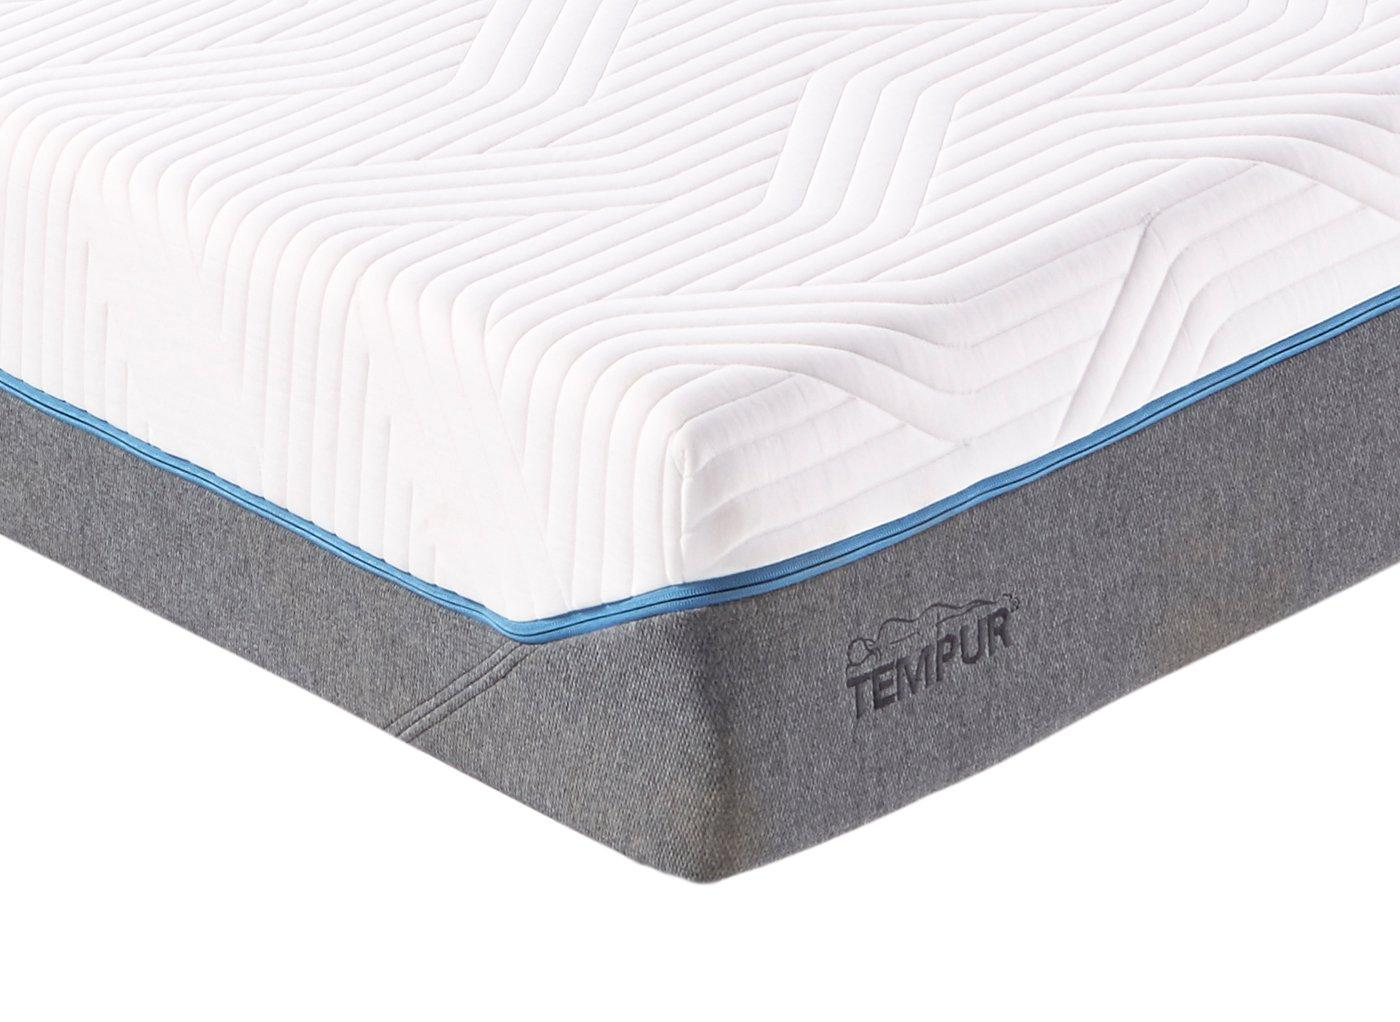 Tempur Cooltouch Cloud Elite Mattress - Medium 4'0 Small double